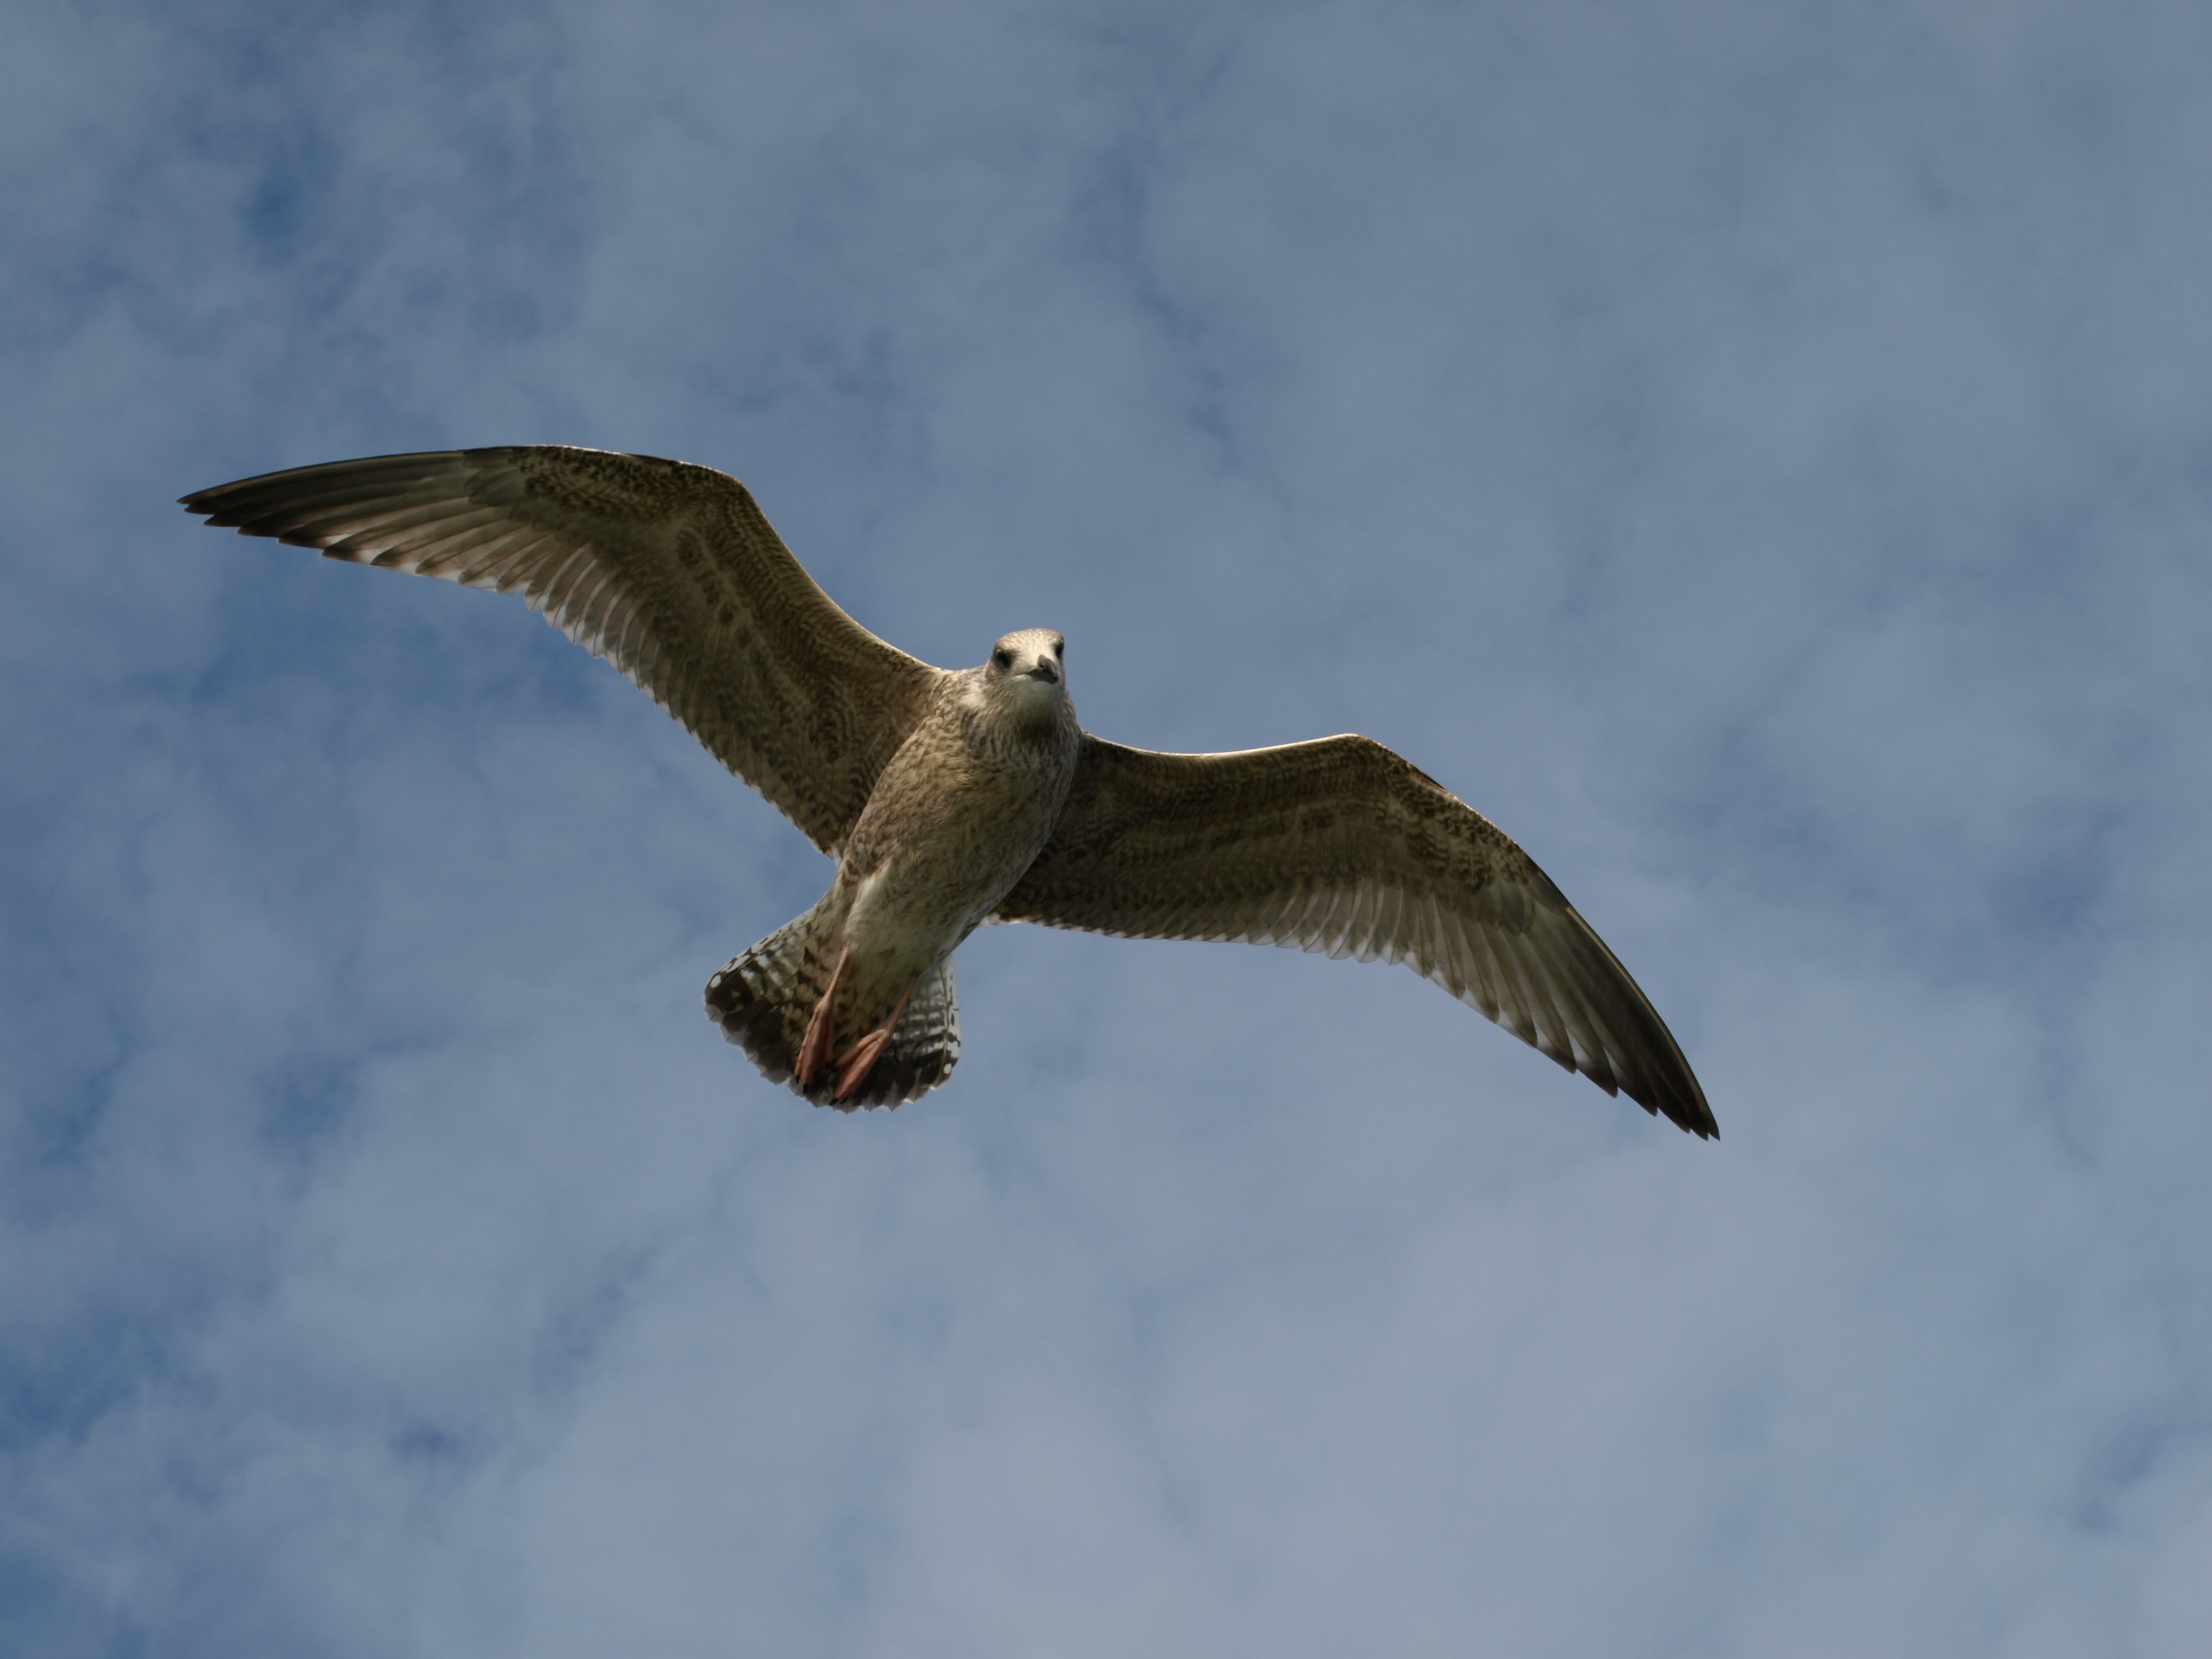 low angle photo of brown falcon